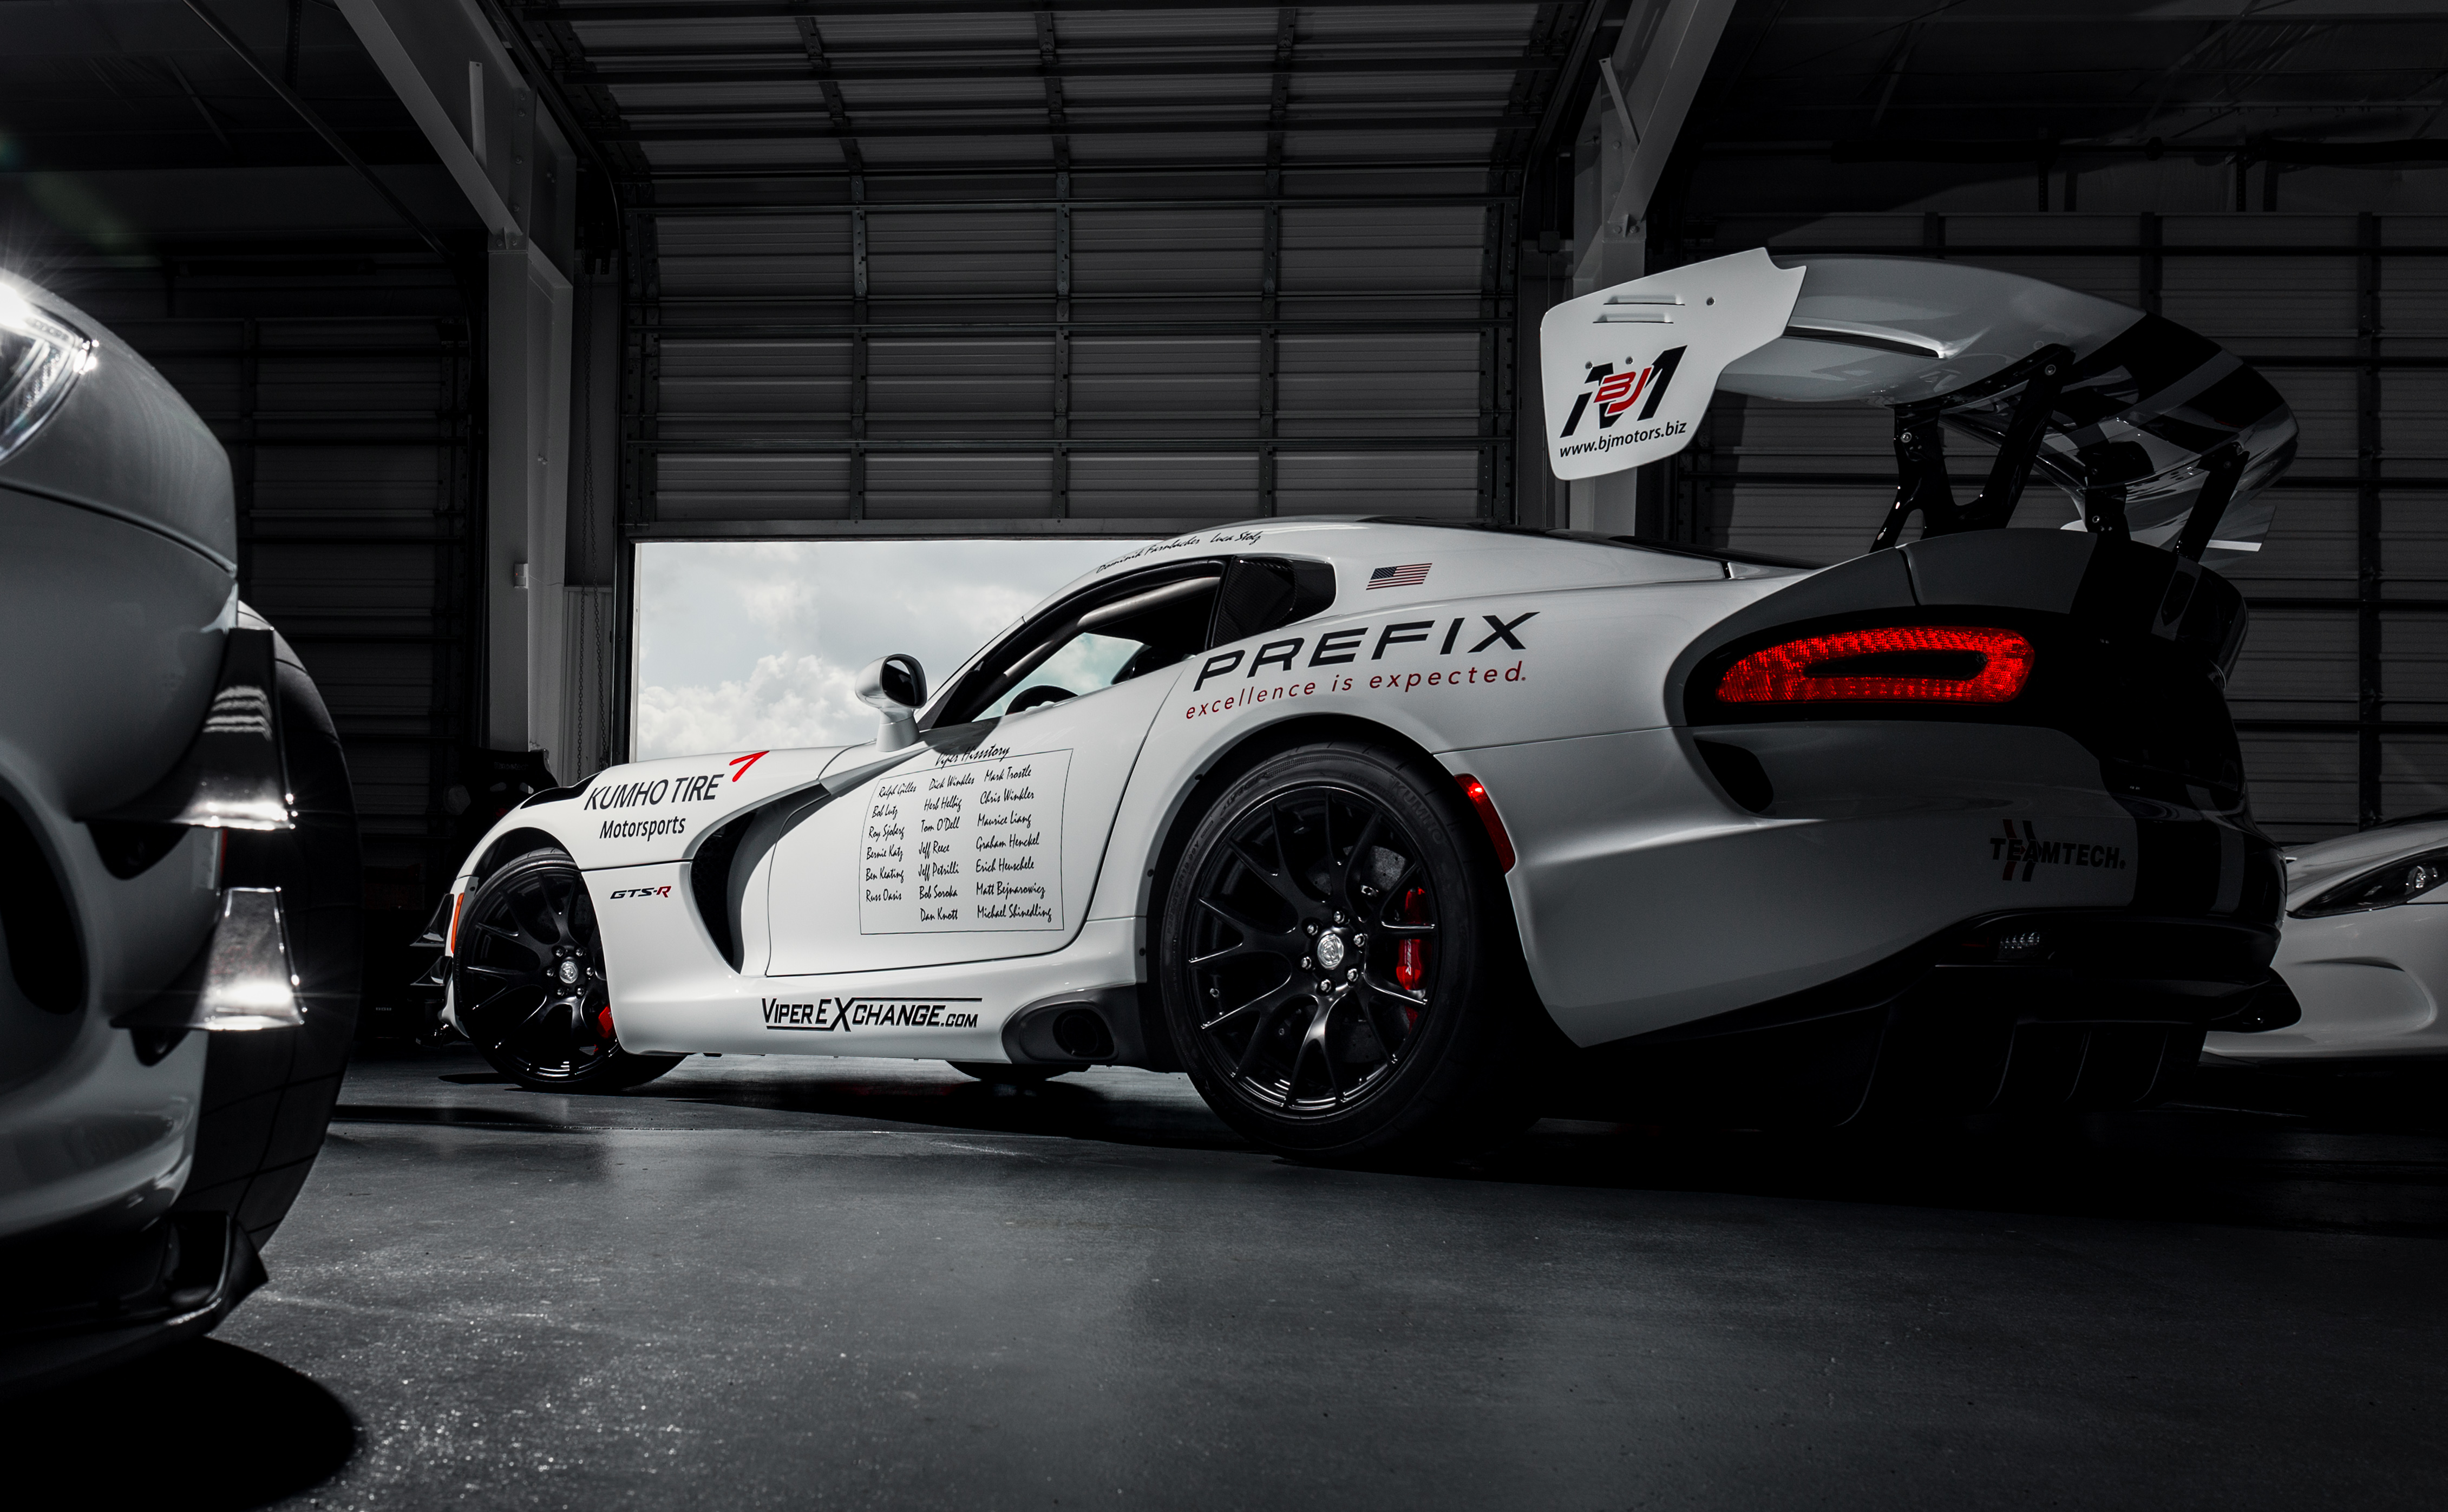 Luxury Car Pictures Wallpaper Prefix Corporation Joins Effort To Take Viper Back To